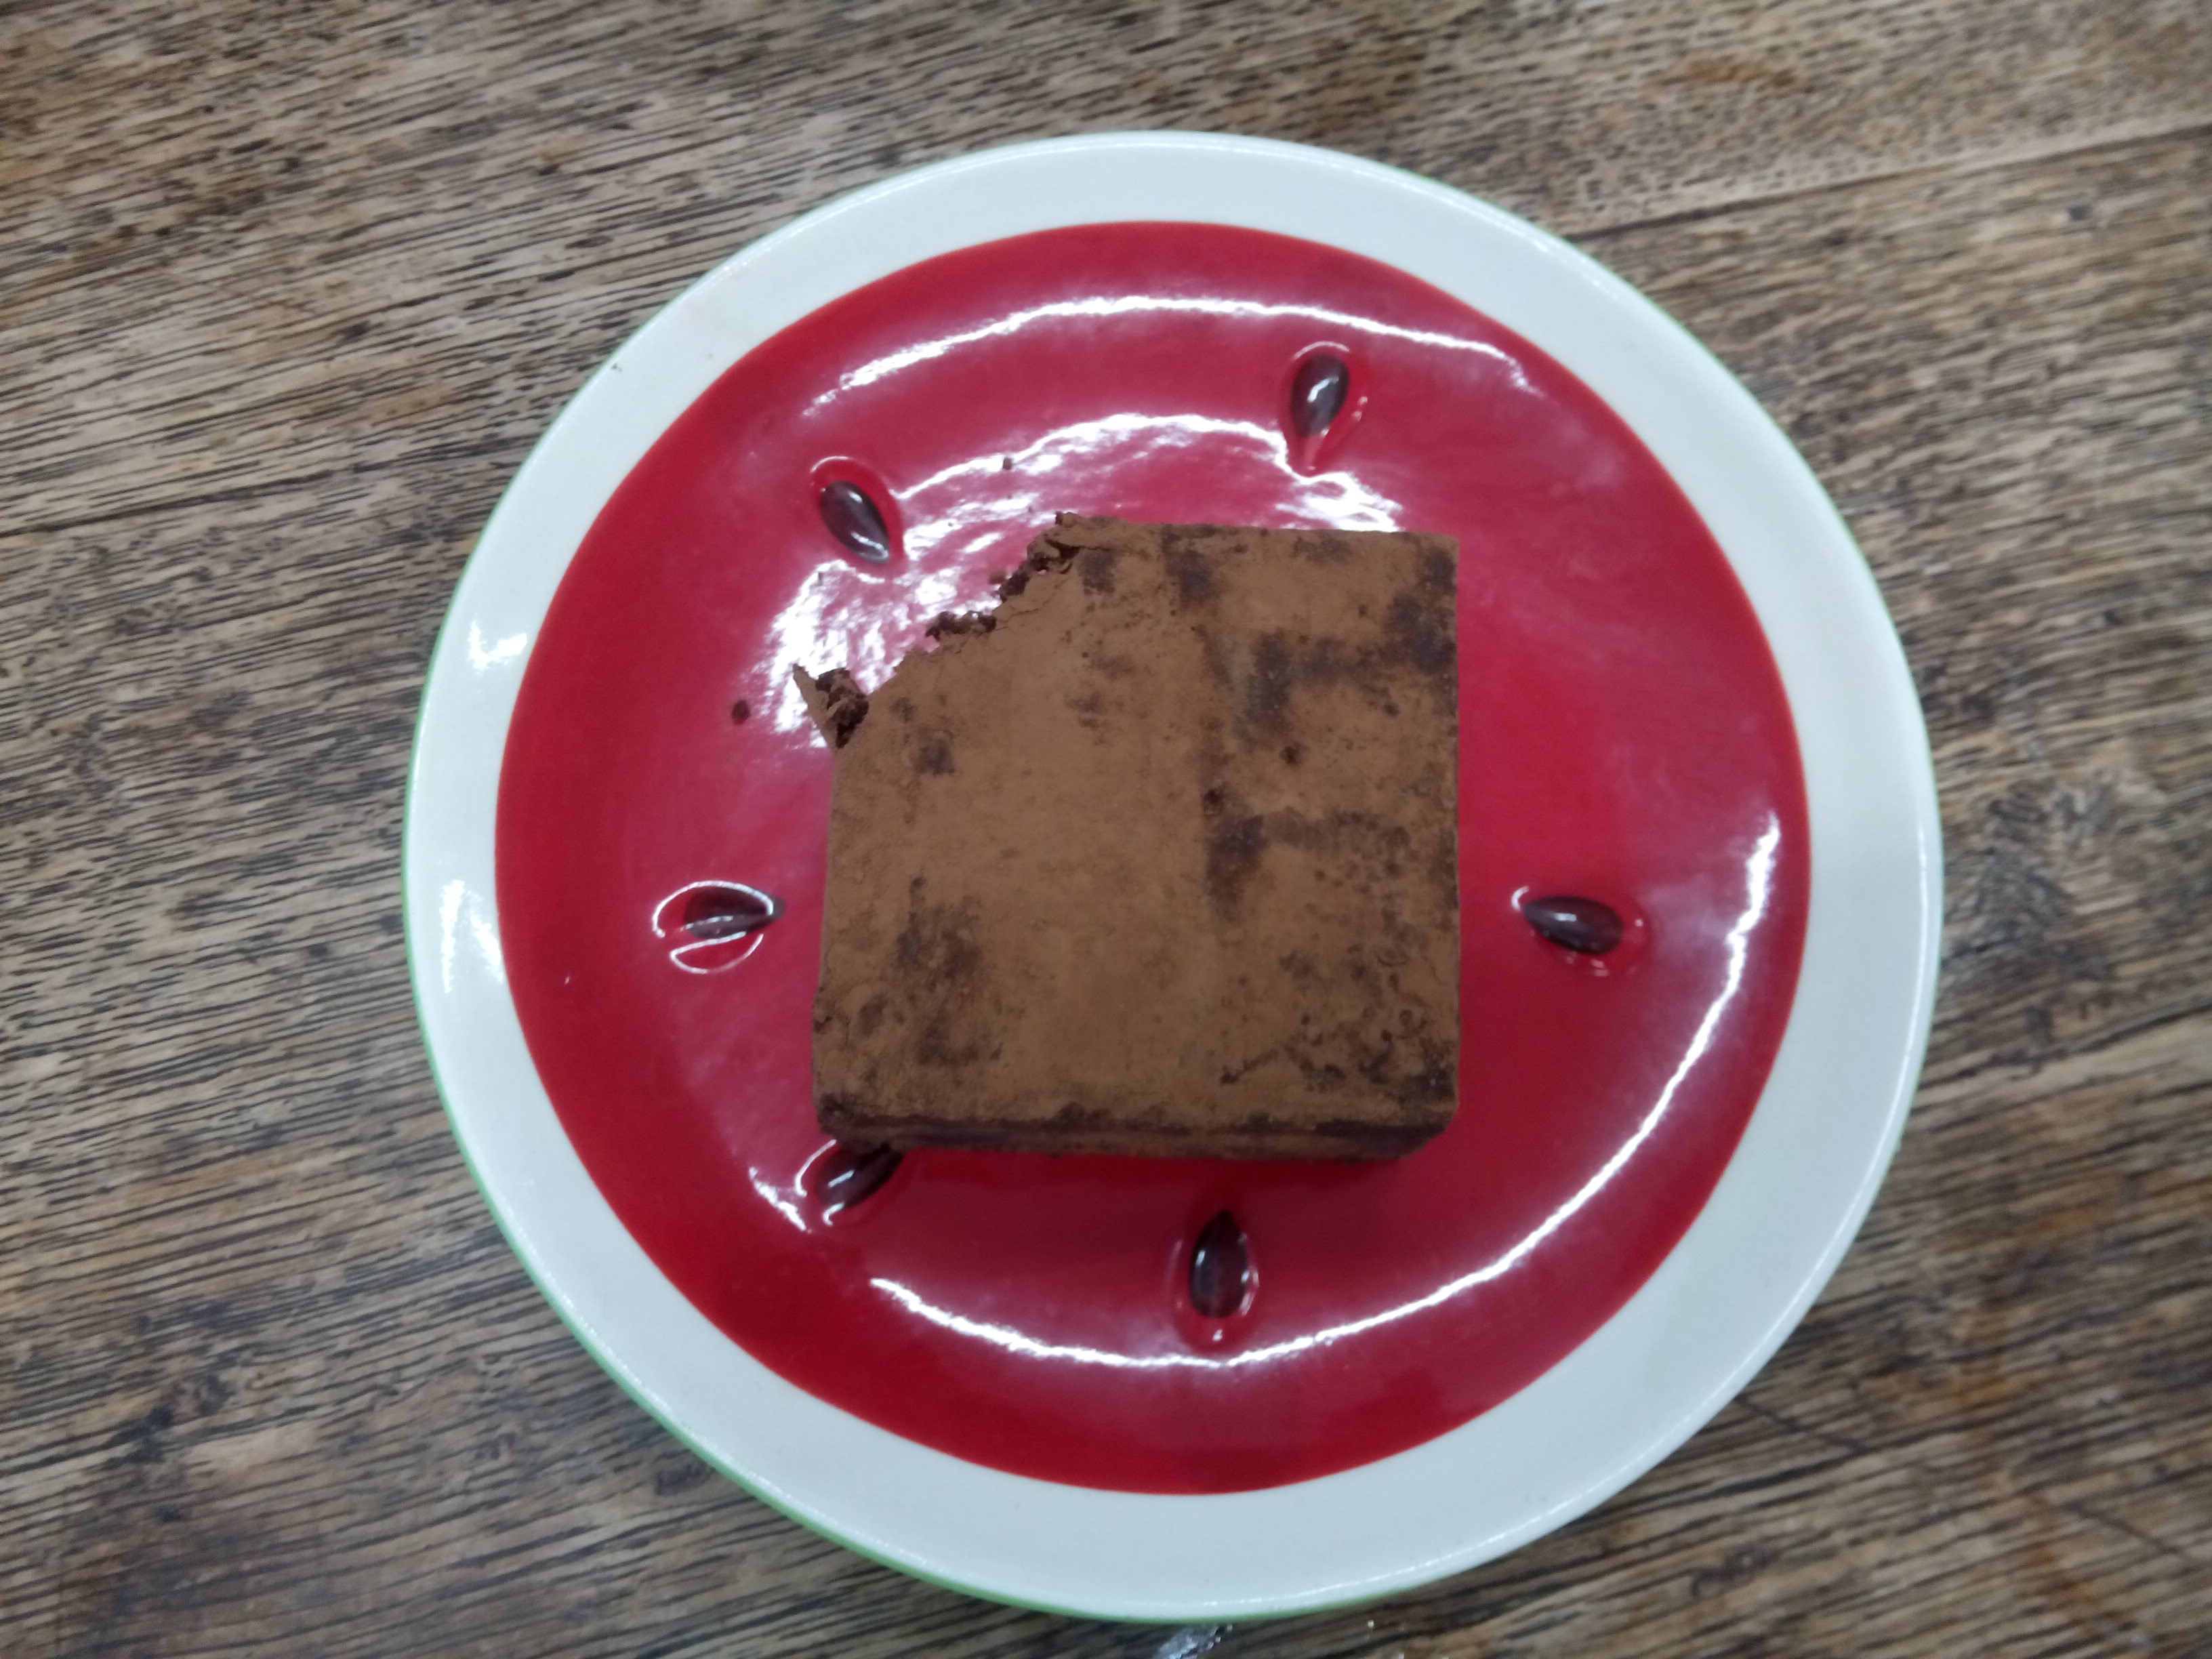 A dark chocolate square cake on a red plate